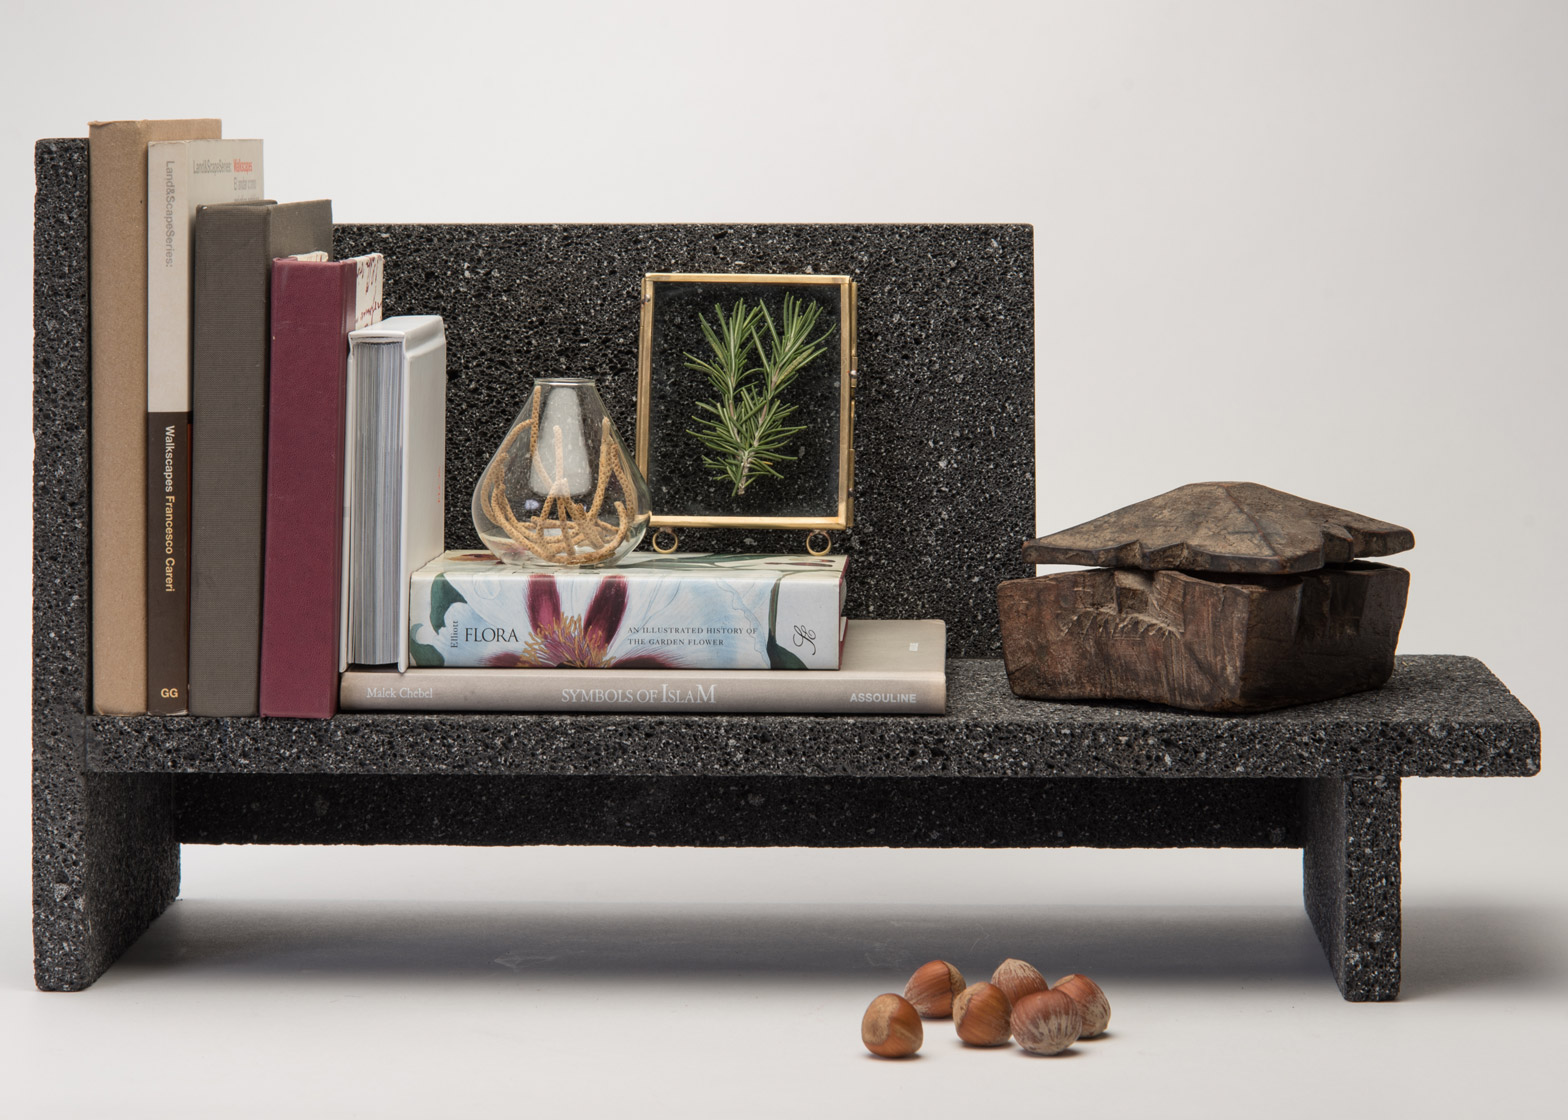 Lava shelves by Peca